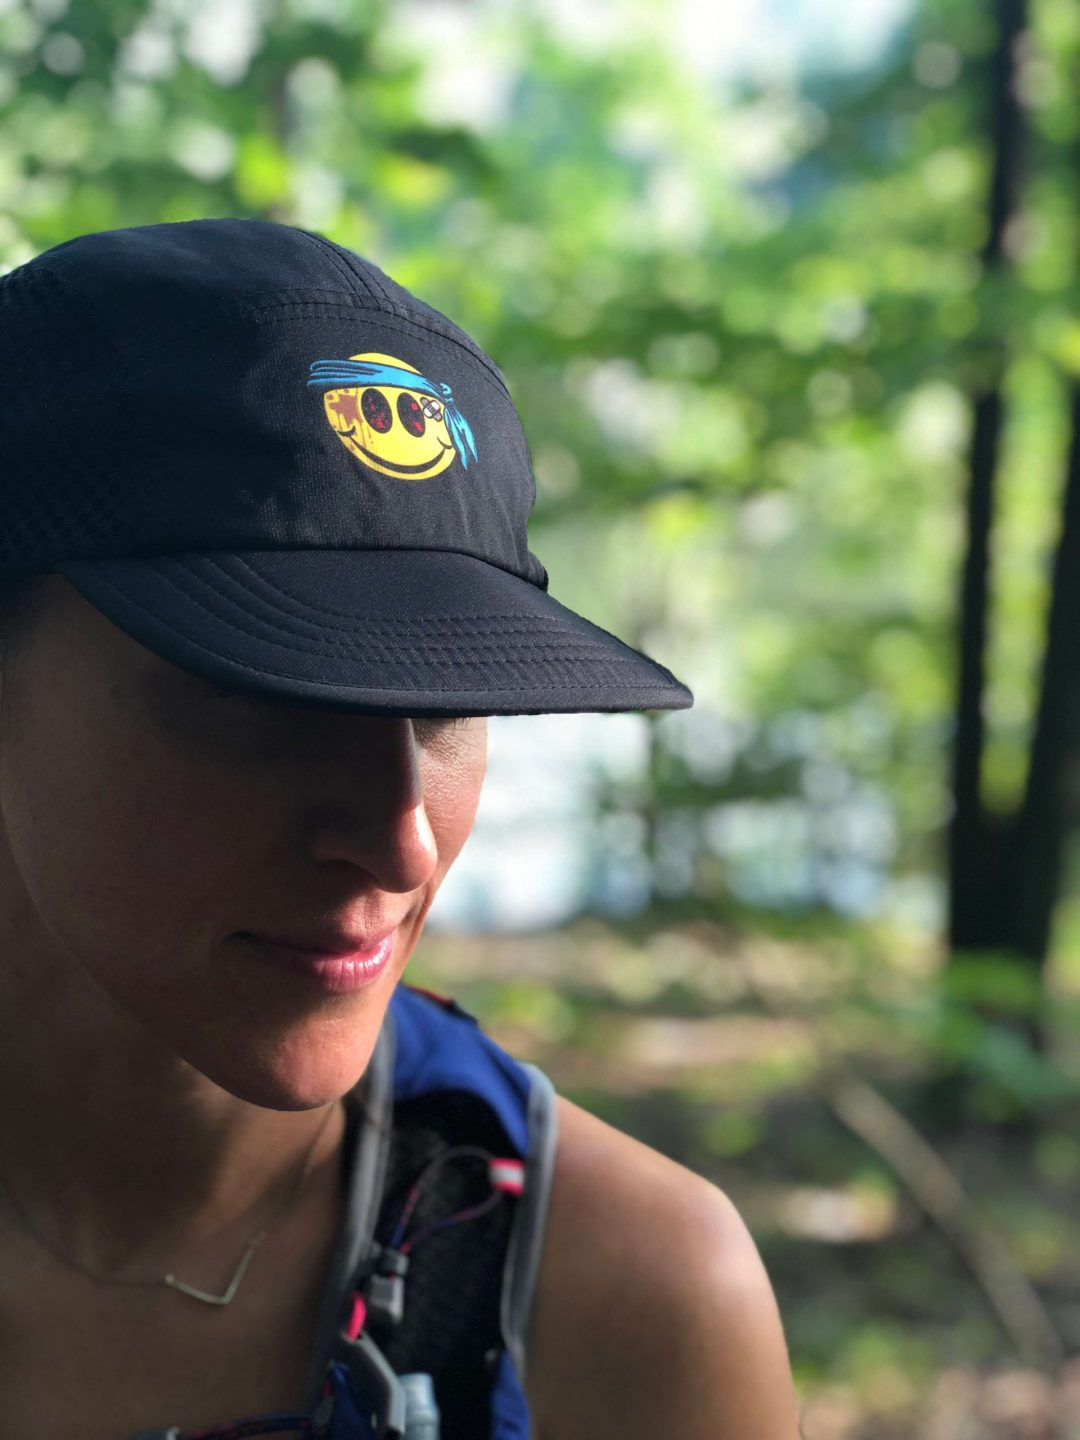 Smiley ultra marathon hat by Wicked Trail